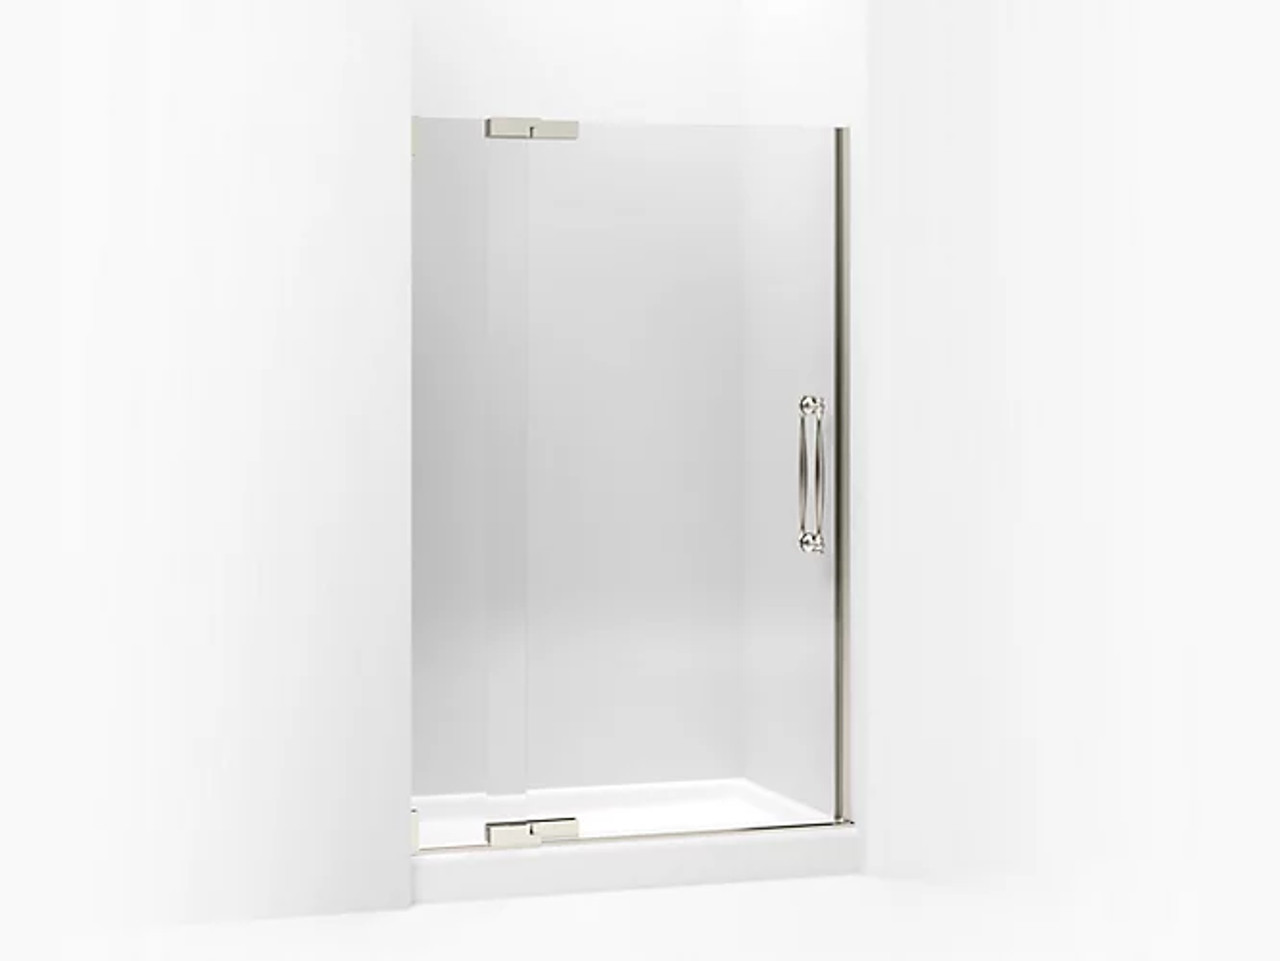 kohler finial pivot shower door 72 1 4 h x 45 1 4 47 3 4 w with 1 2 in crystal clear glass with brushed nickel frame